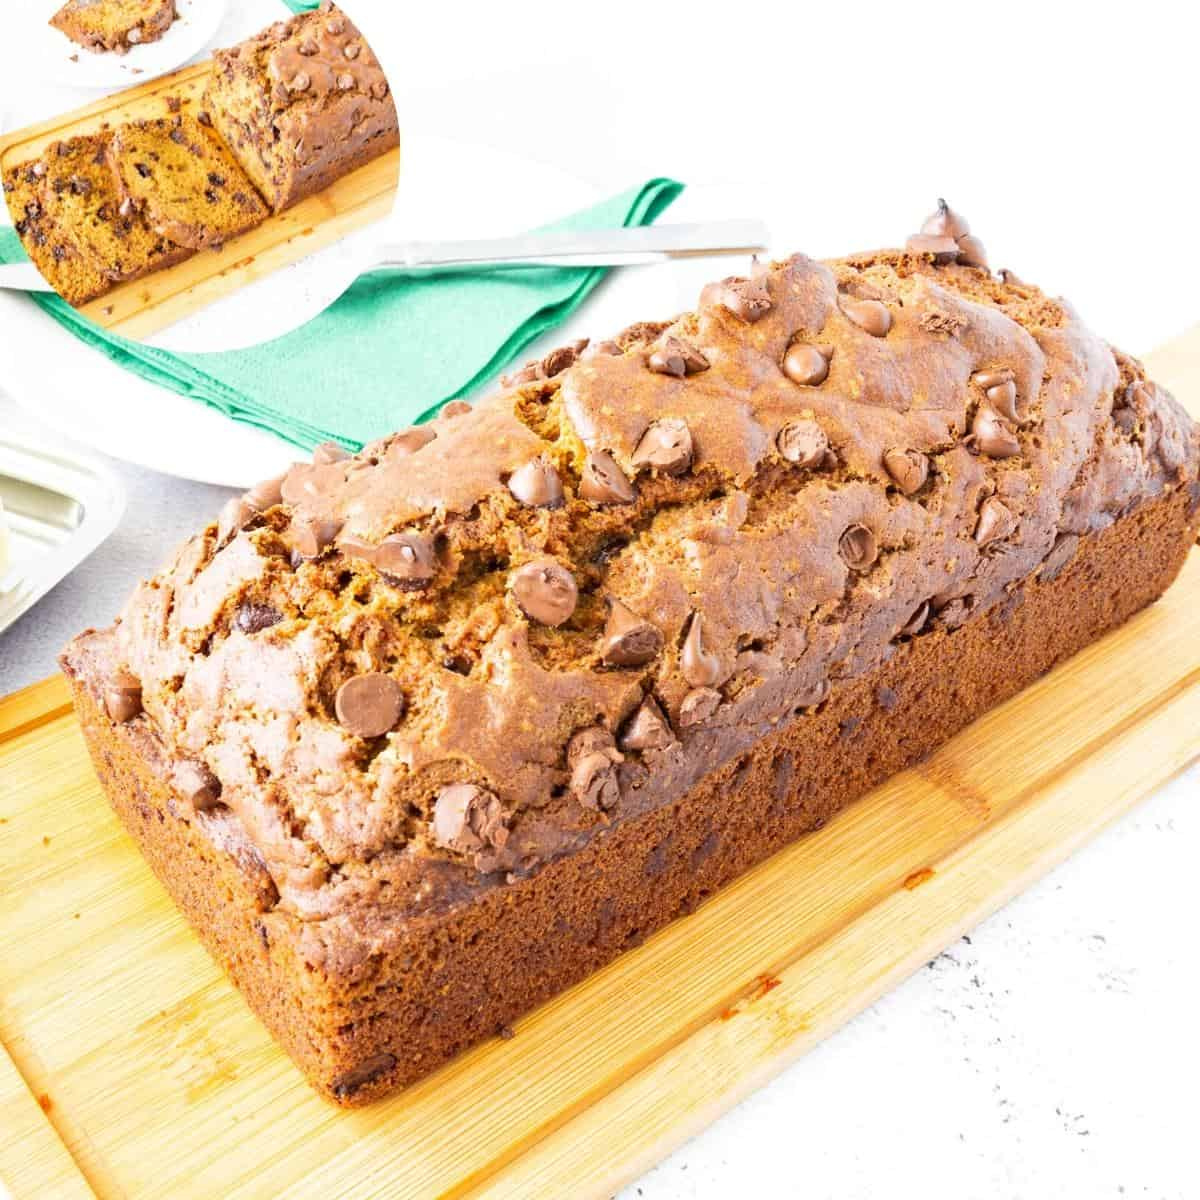 A pumpkin loaf with chocolate chips.